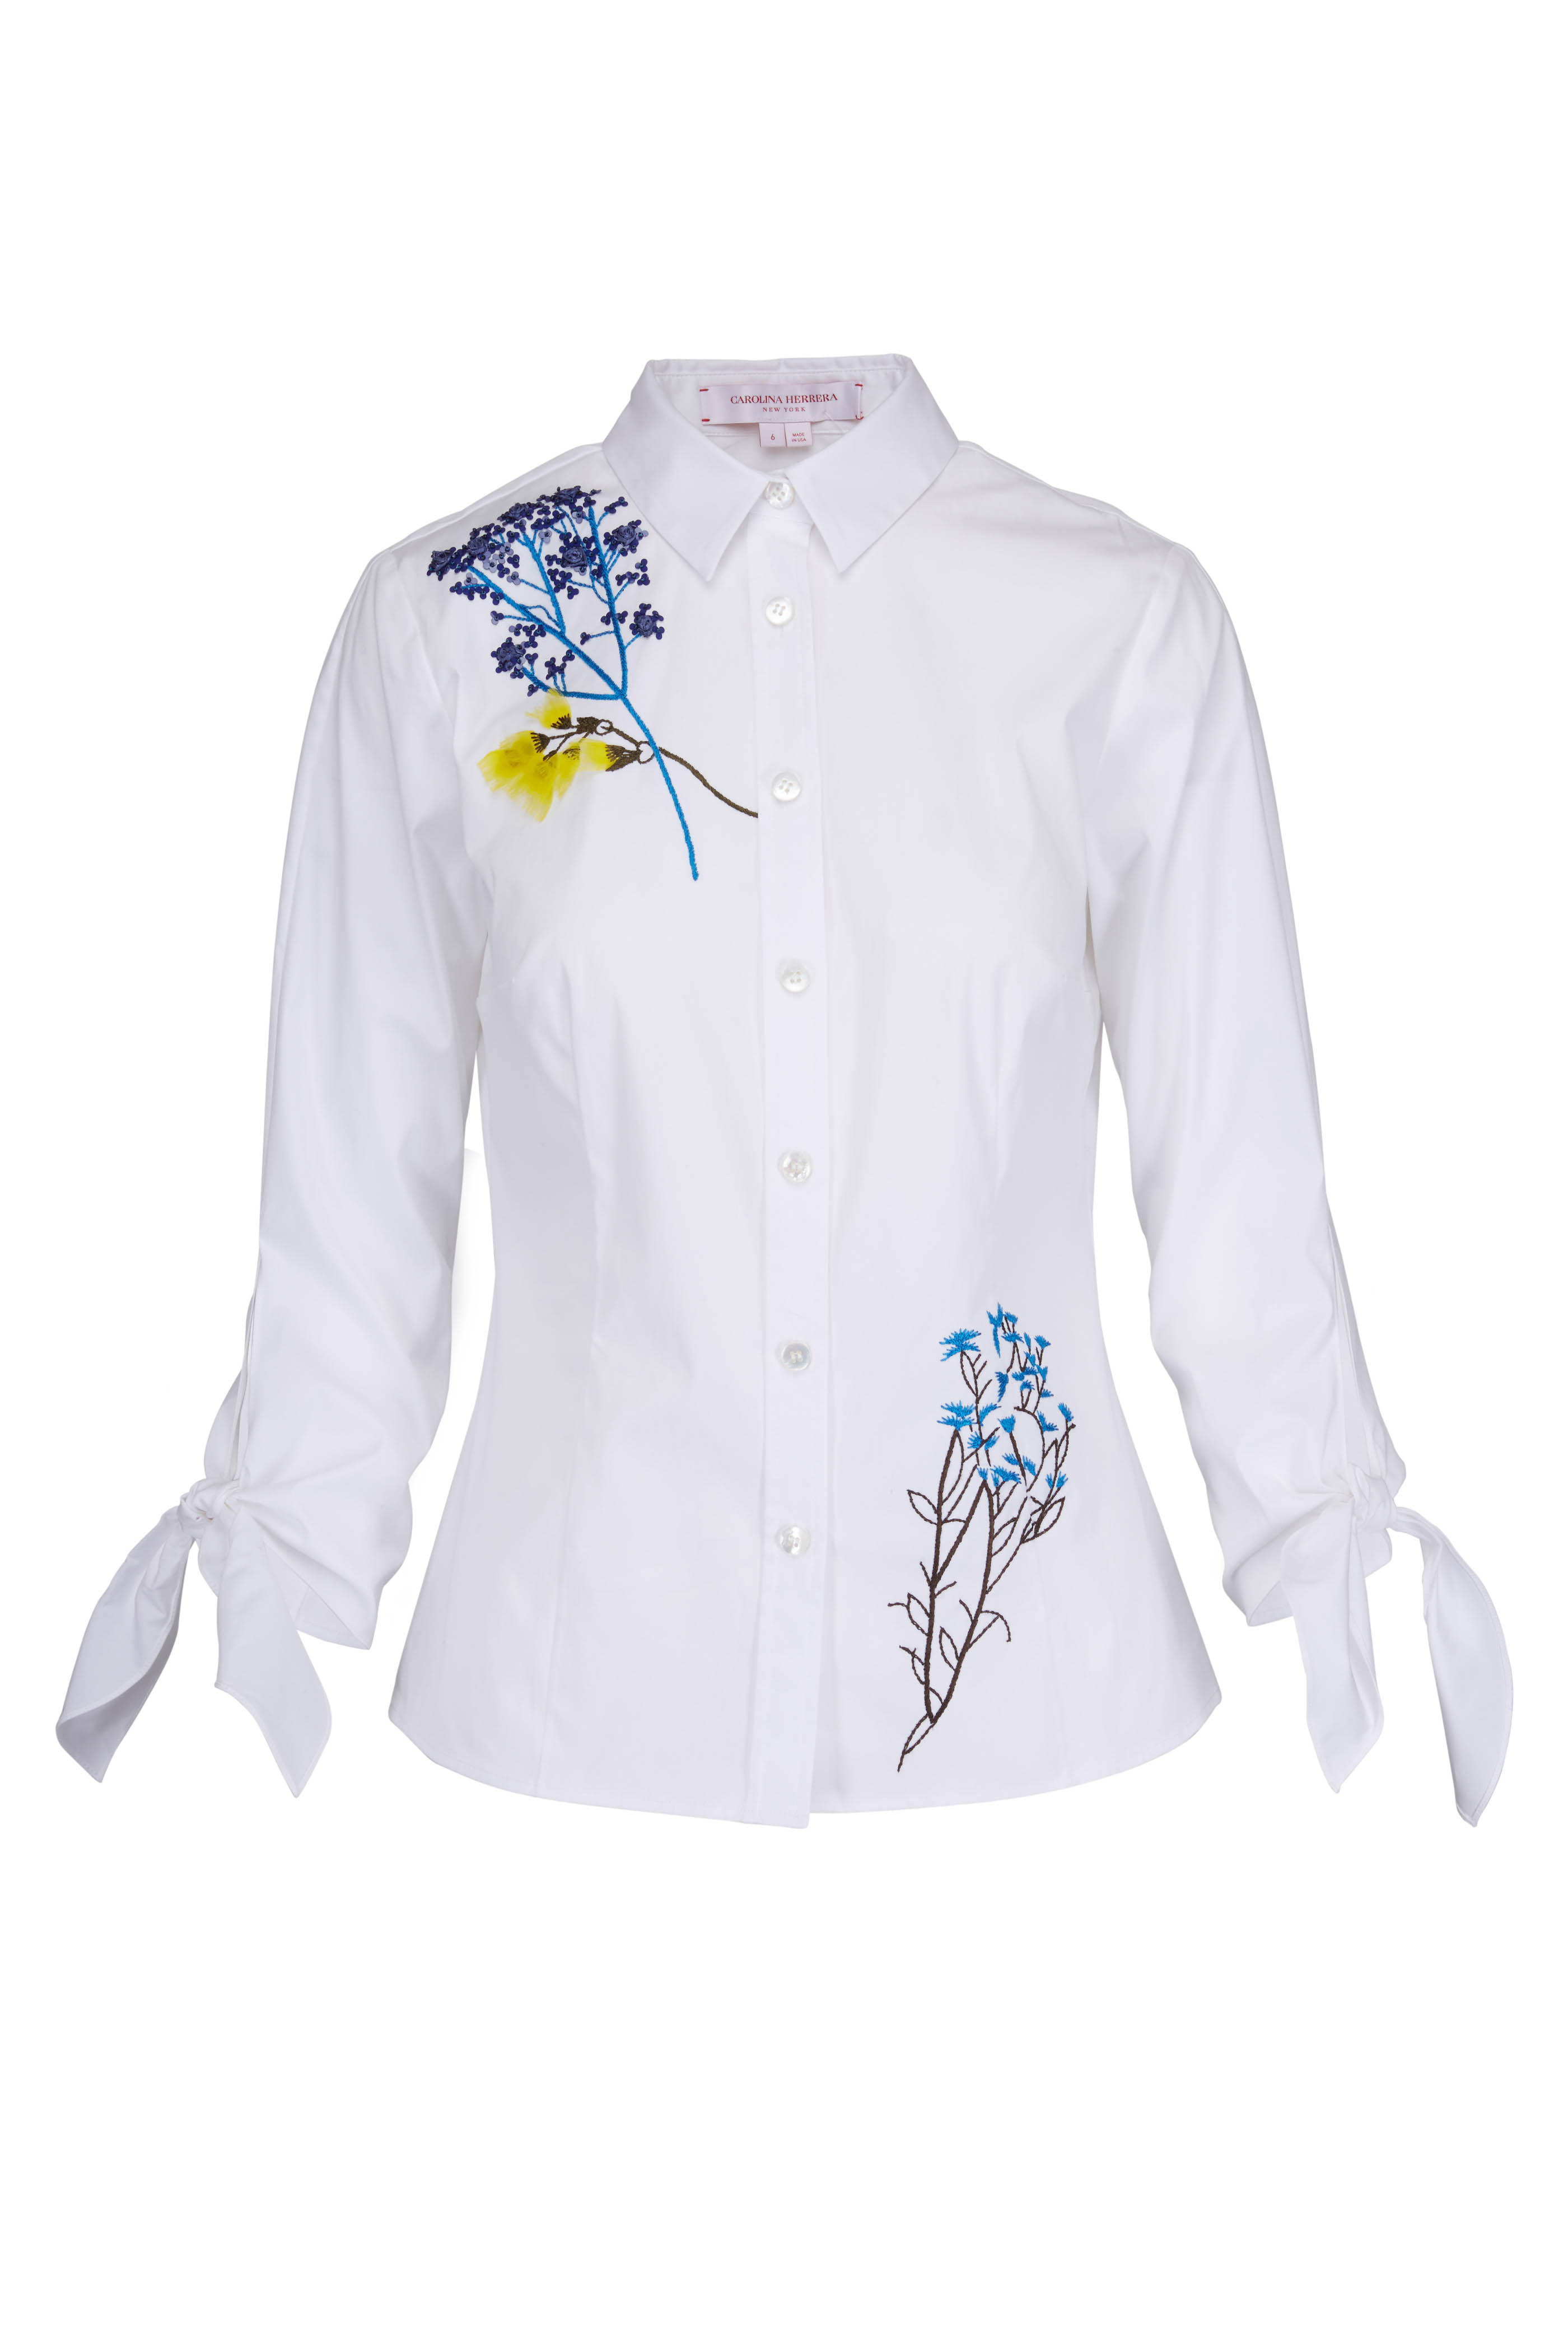 3c4a72890aae3d Carolina Herrera - White Embroidered Flowers Blouse   Mitchell Stores